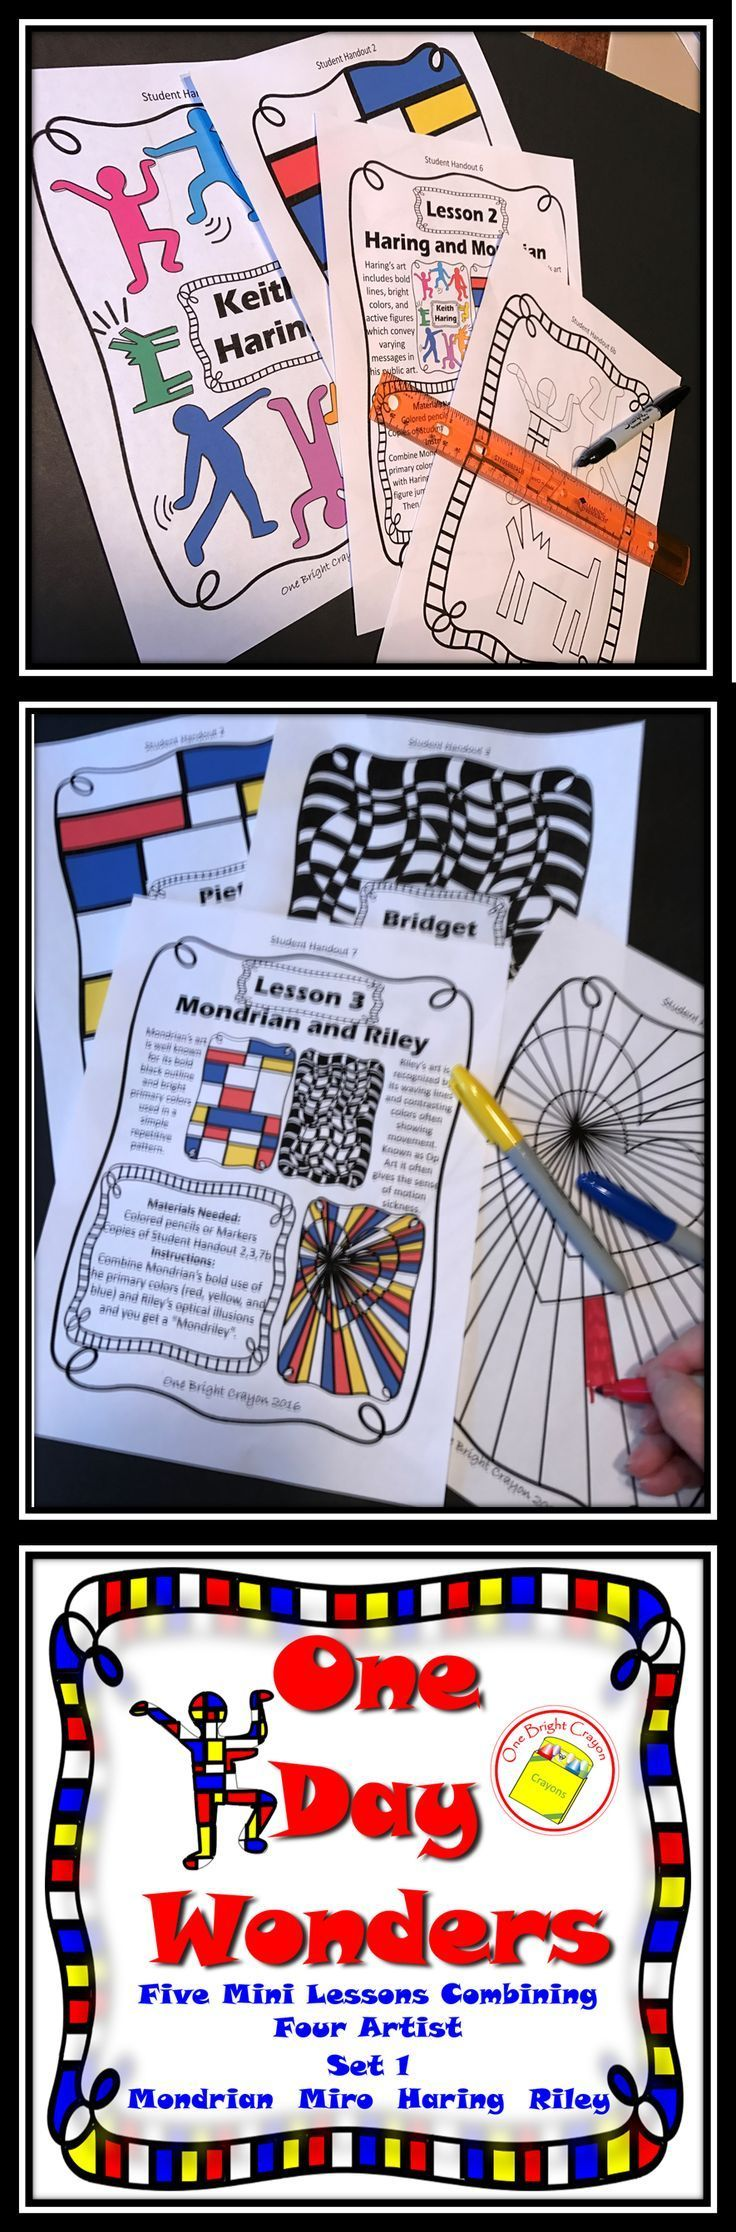 Art lesson handouts about artists and styles of art that is great for substitute lessons. Five one day lessons combining 4 different artists which gives each student a unique understanding of artists' styles. Great for sub work with no need for prep! Copy